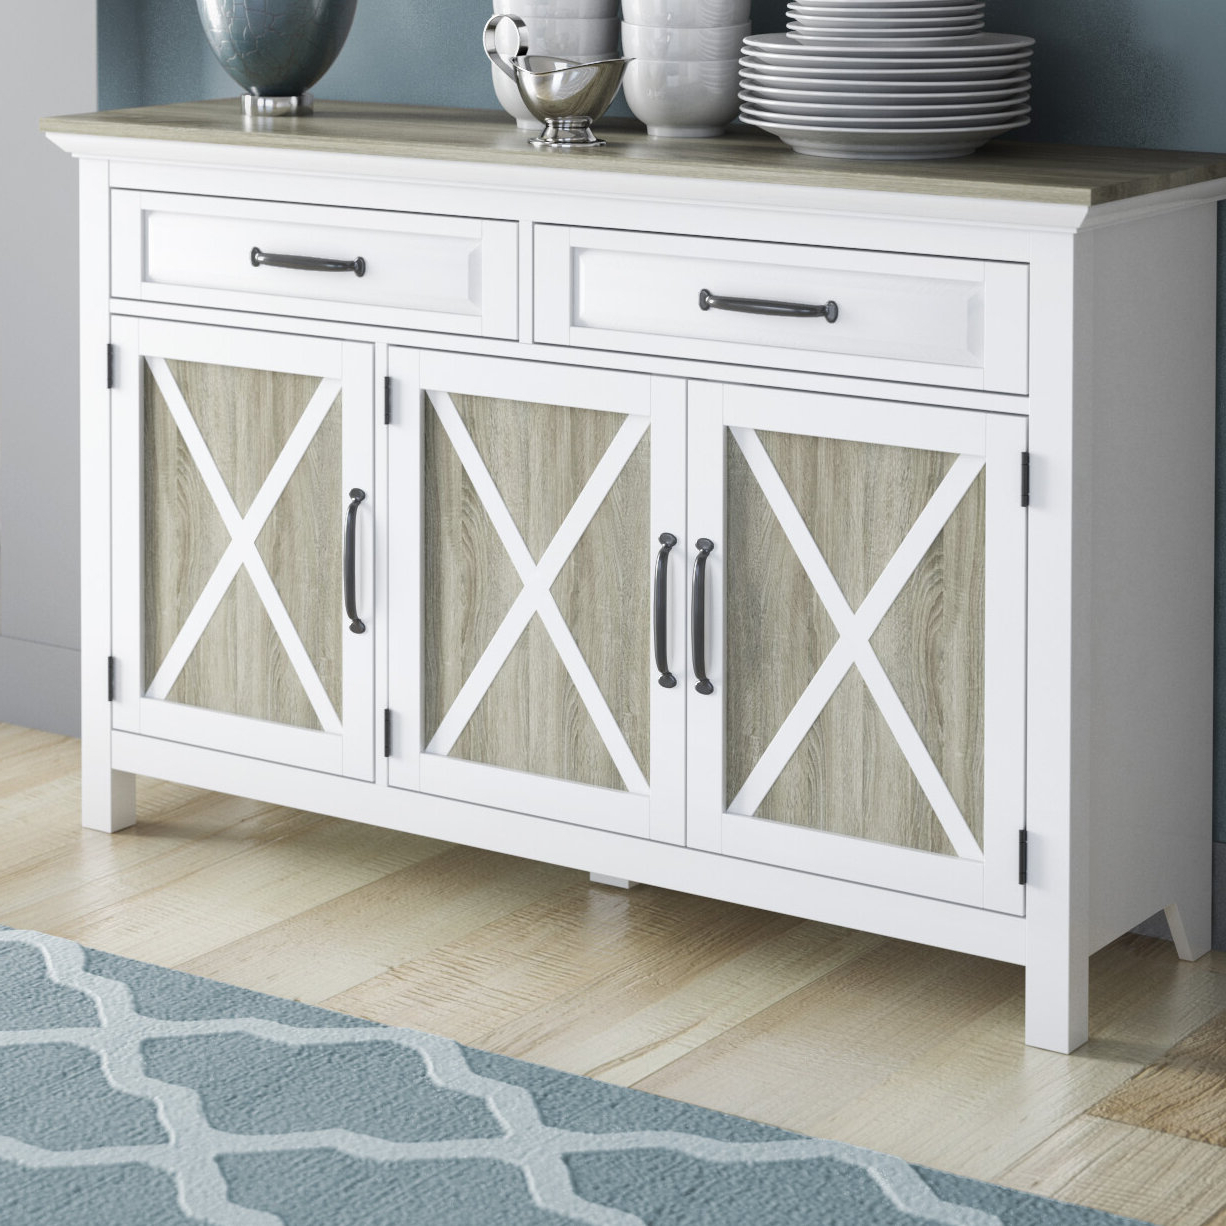 Haverly Sideboard Throughout Favorite Joyner Sideboards (View 4 of 20)